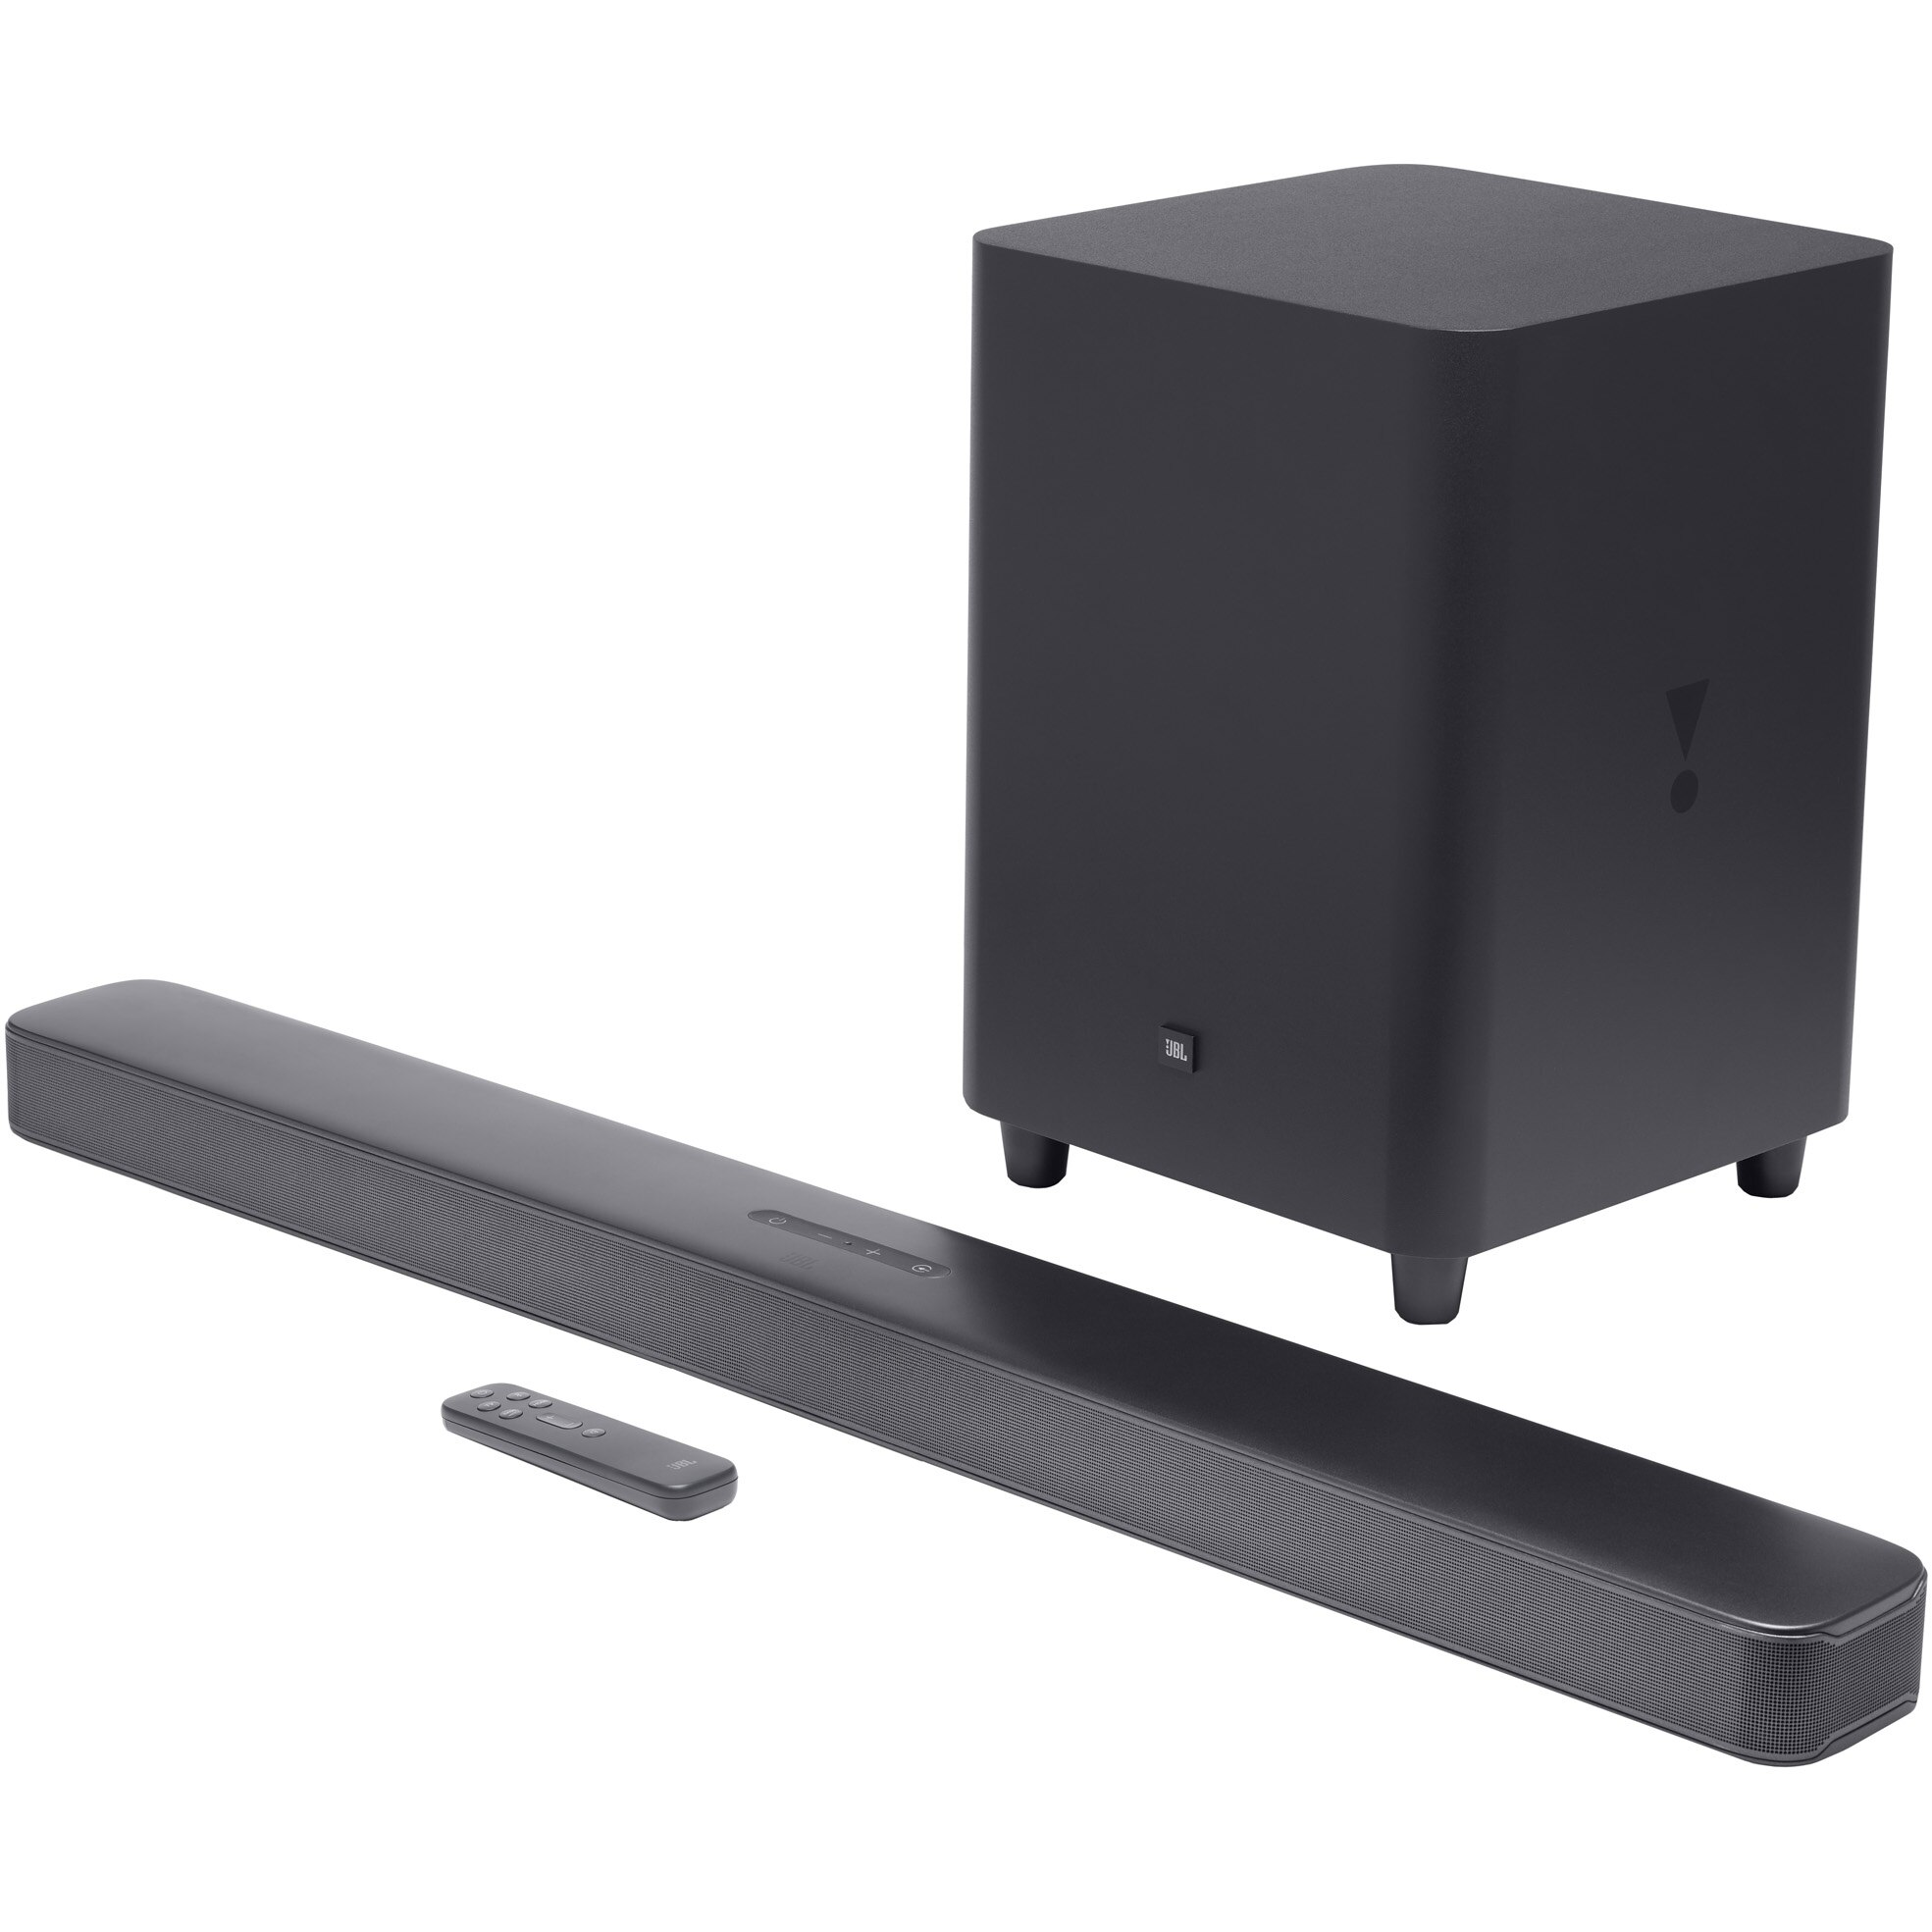 Fotografie Soundbar JBL Bar 5.1 Surround, 550W, MultiBeam™ Technology, Wireless Subwoofer, Chromecast and Airplay 2 built-in, HDMI 4K Pass-through, Dolby Digital 5.1